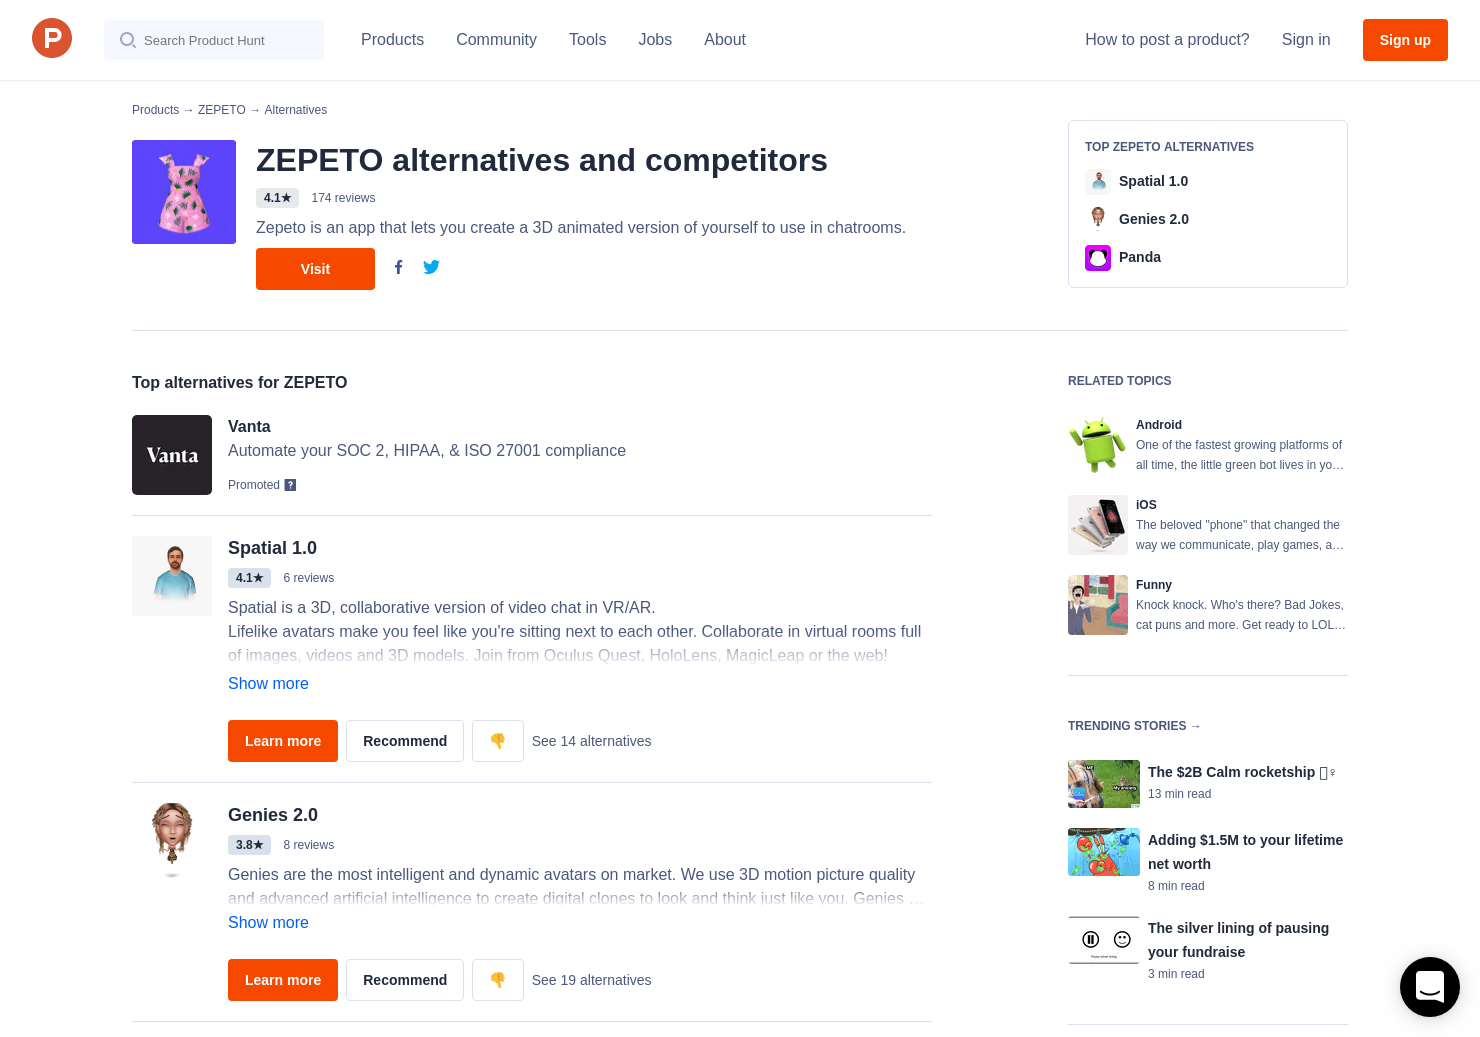 5 Alternatives to Zepeto for Android, iPhone | Product Hunt